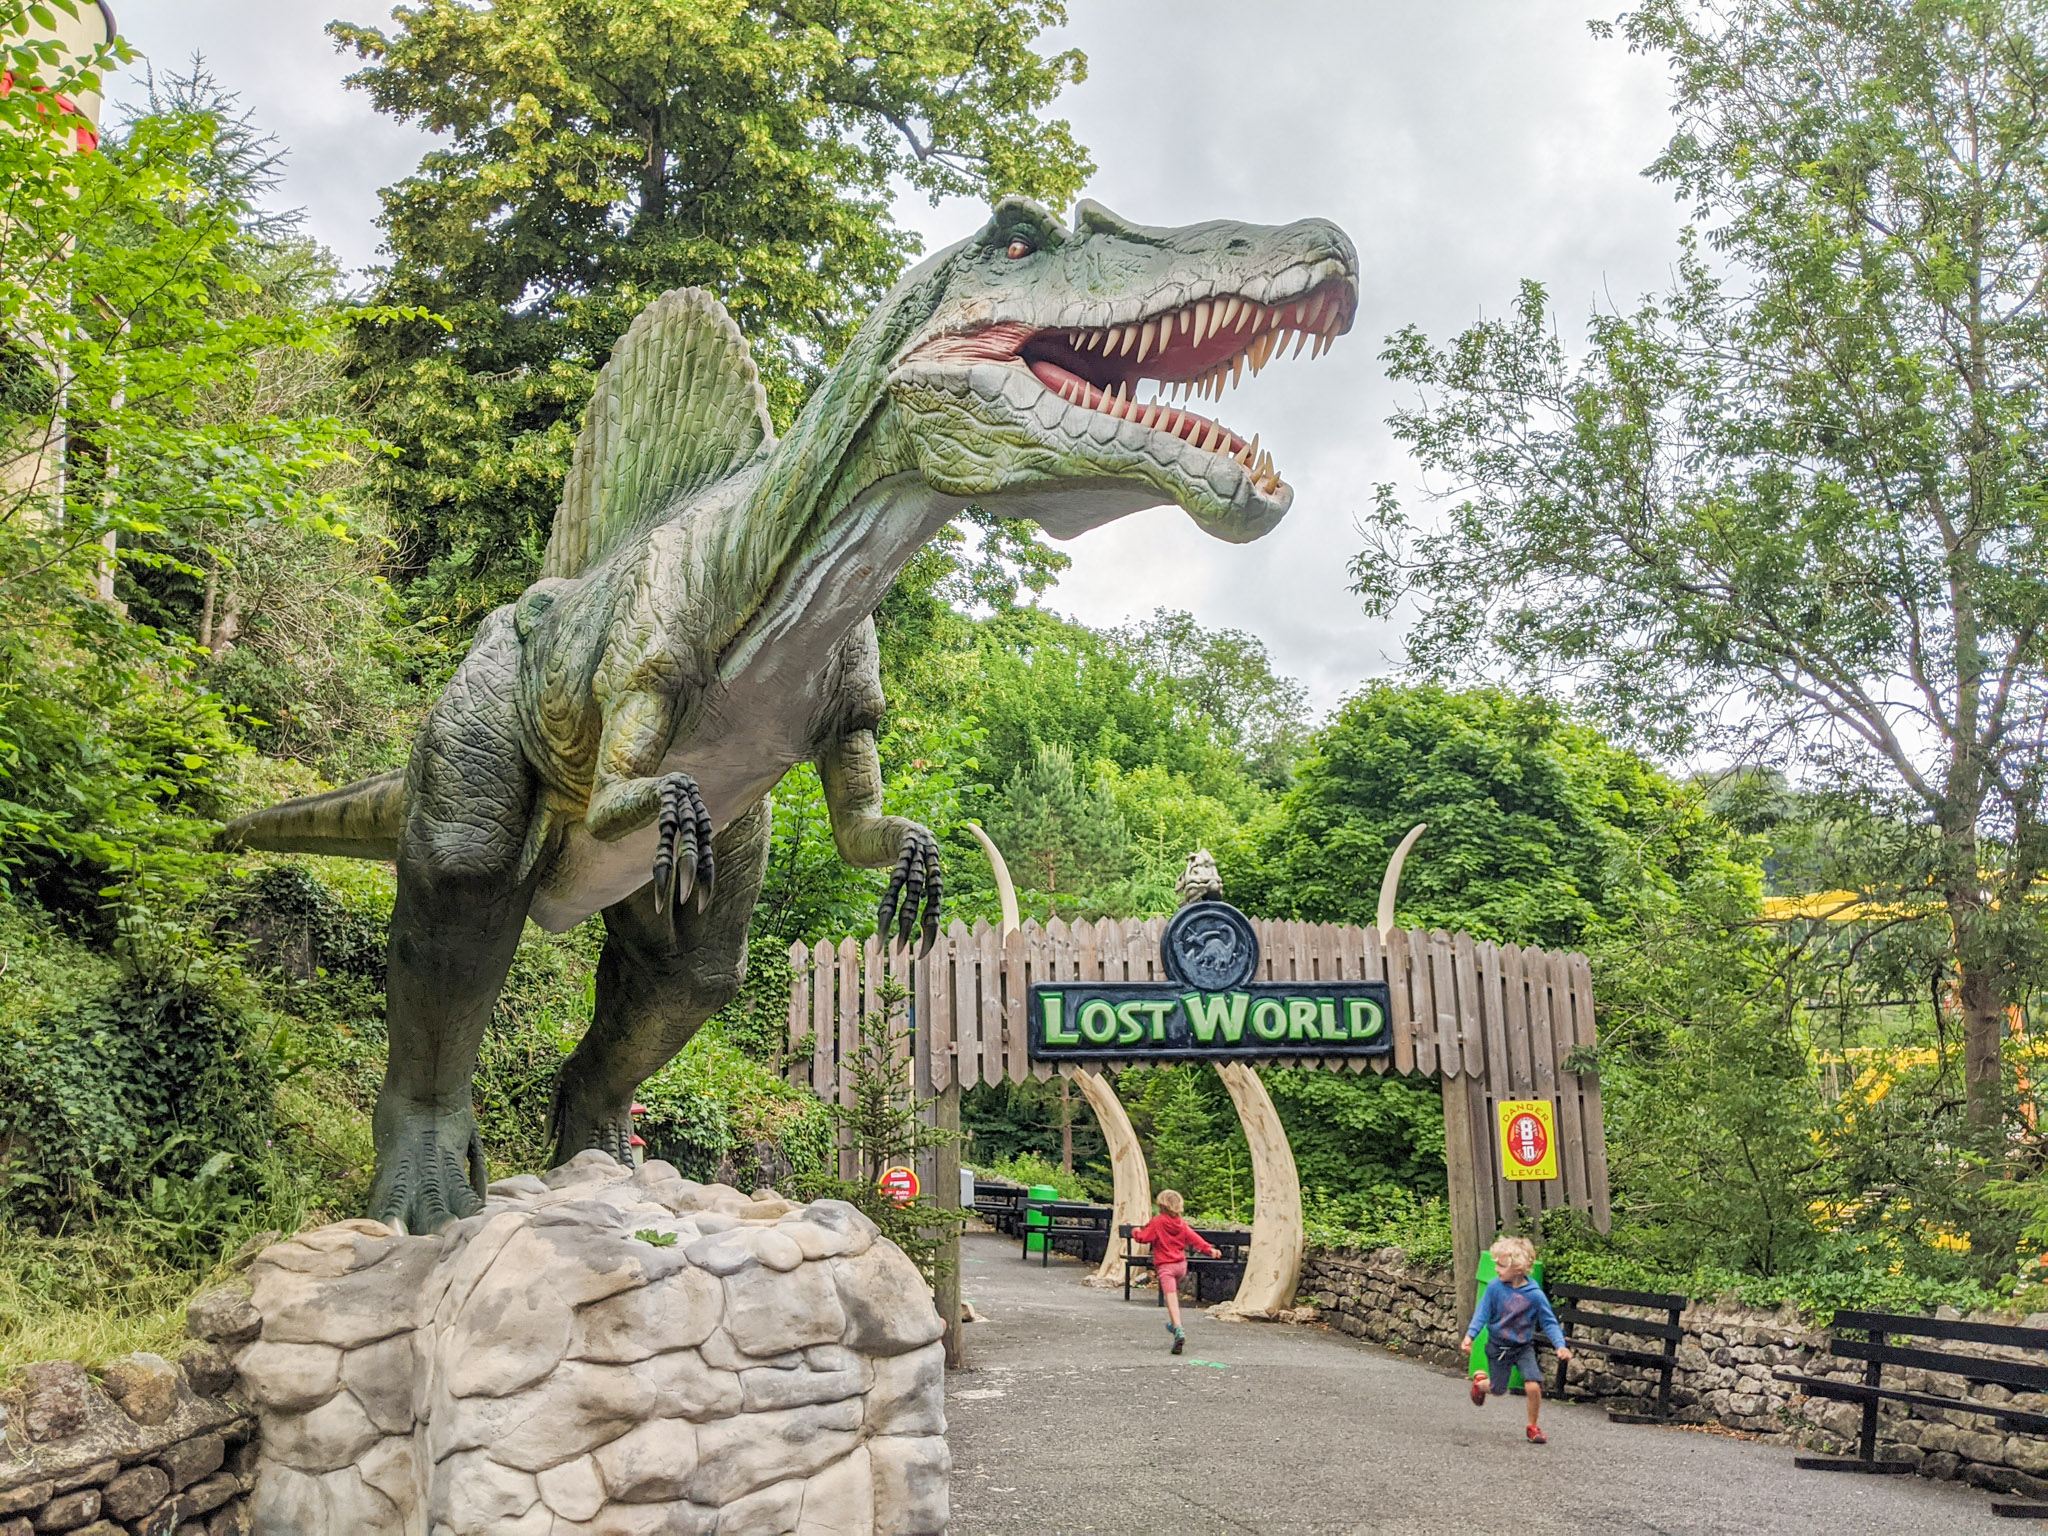 Top 10 tips for visiting GULLIVER'S KINGDOM MATLOCK in 2021